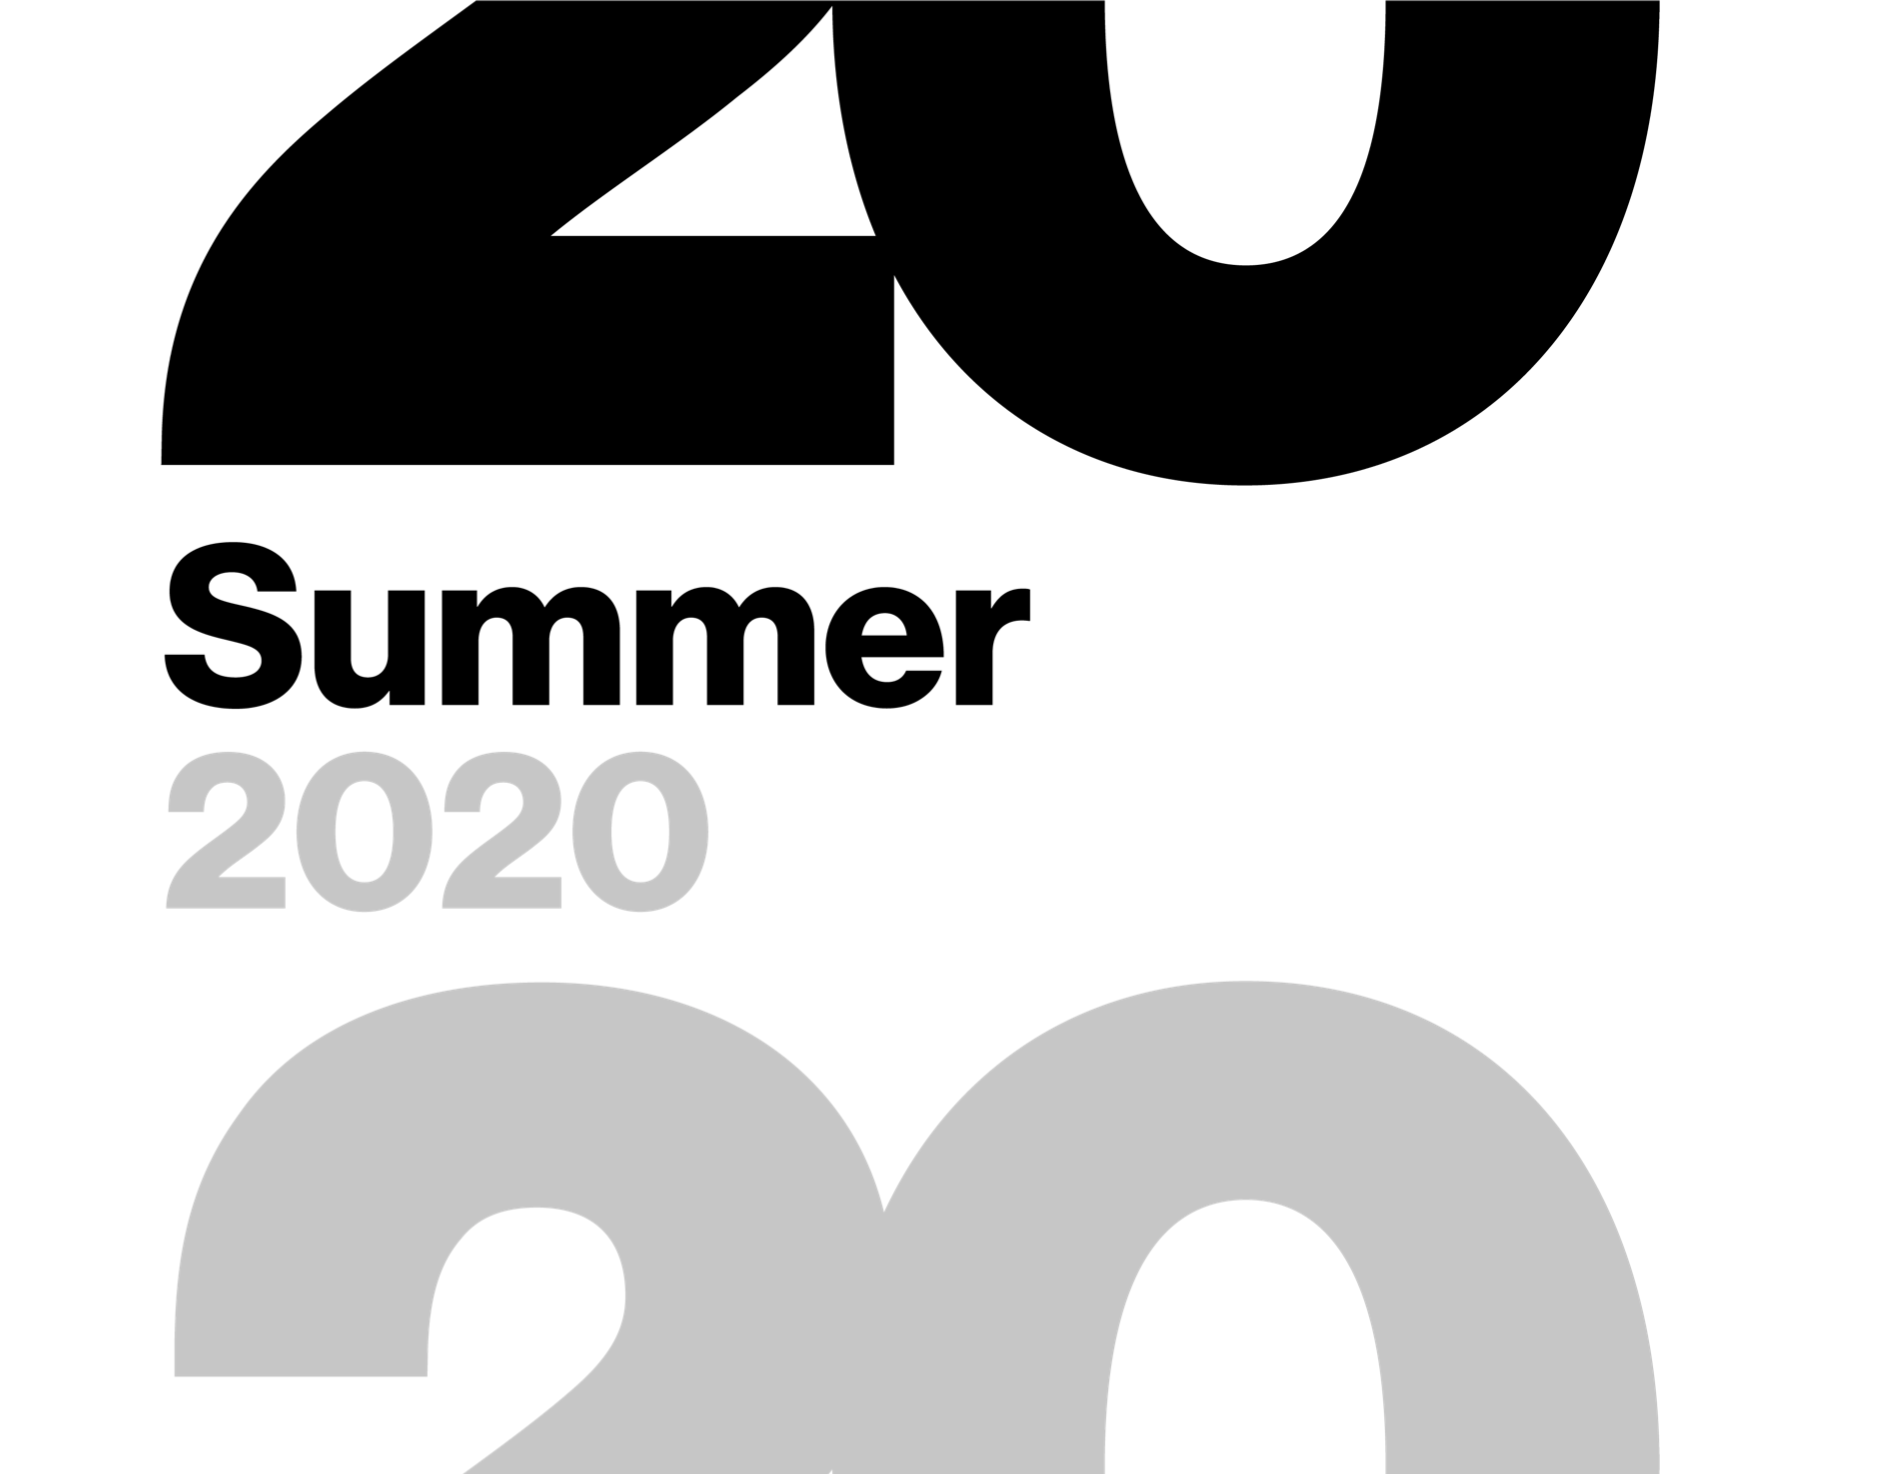 Summer Show 2020 logo from ECA